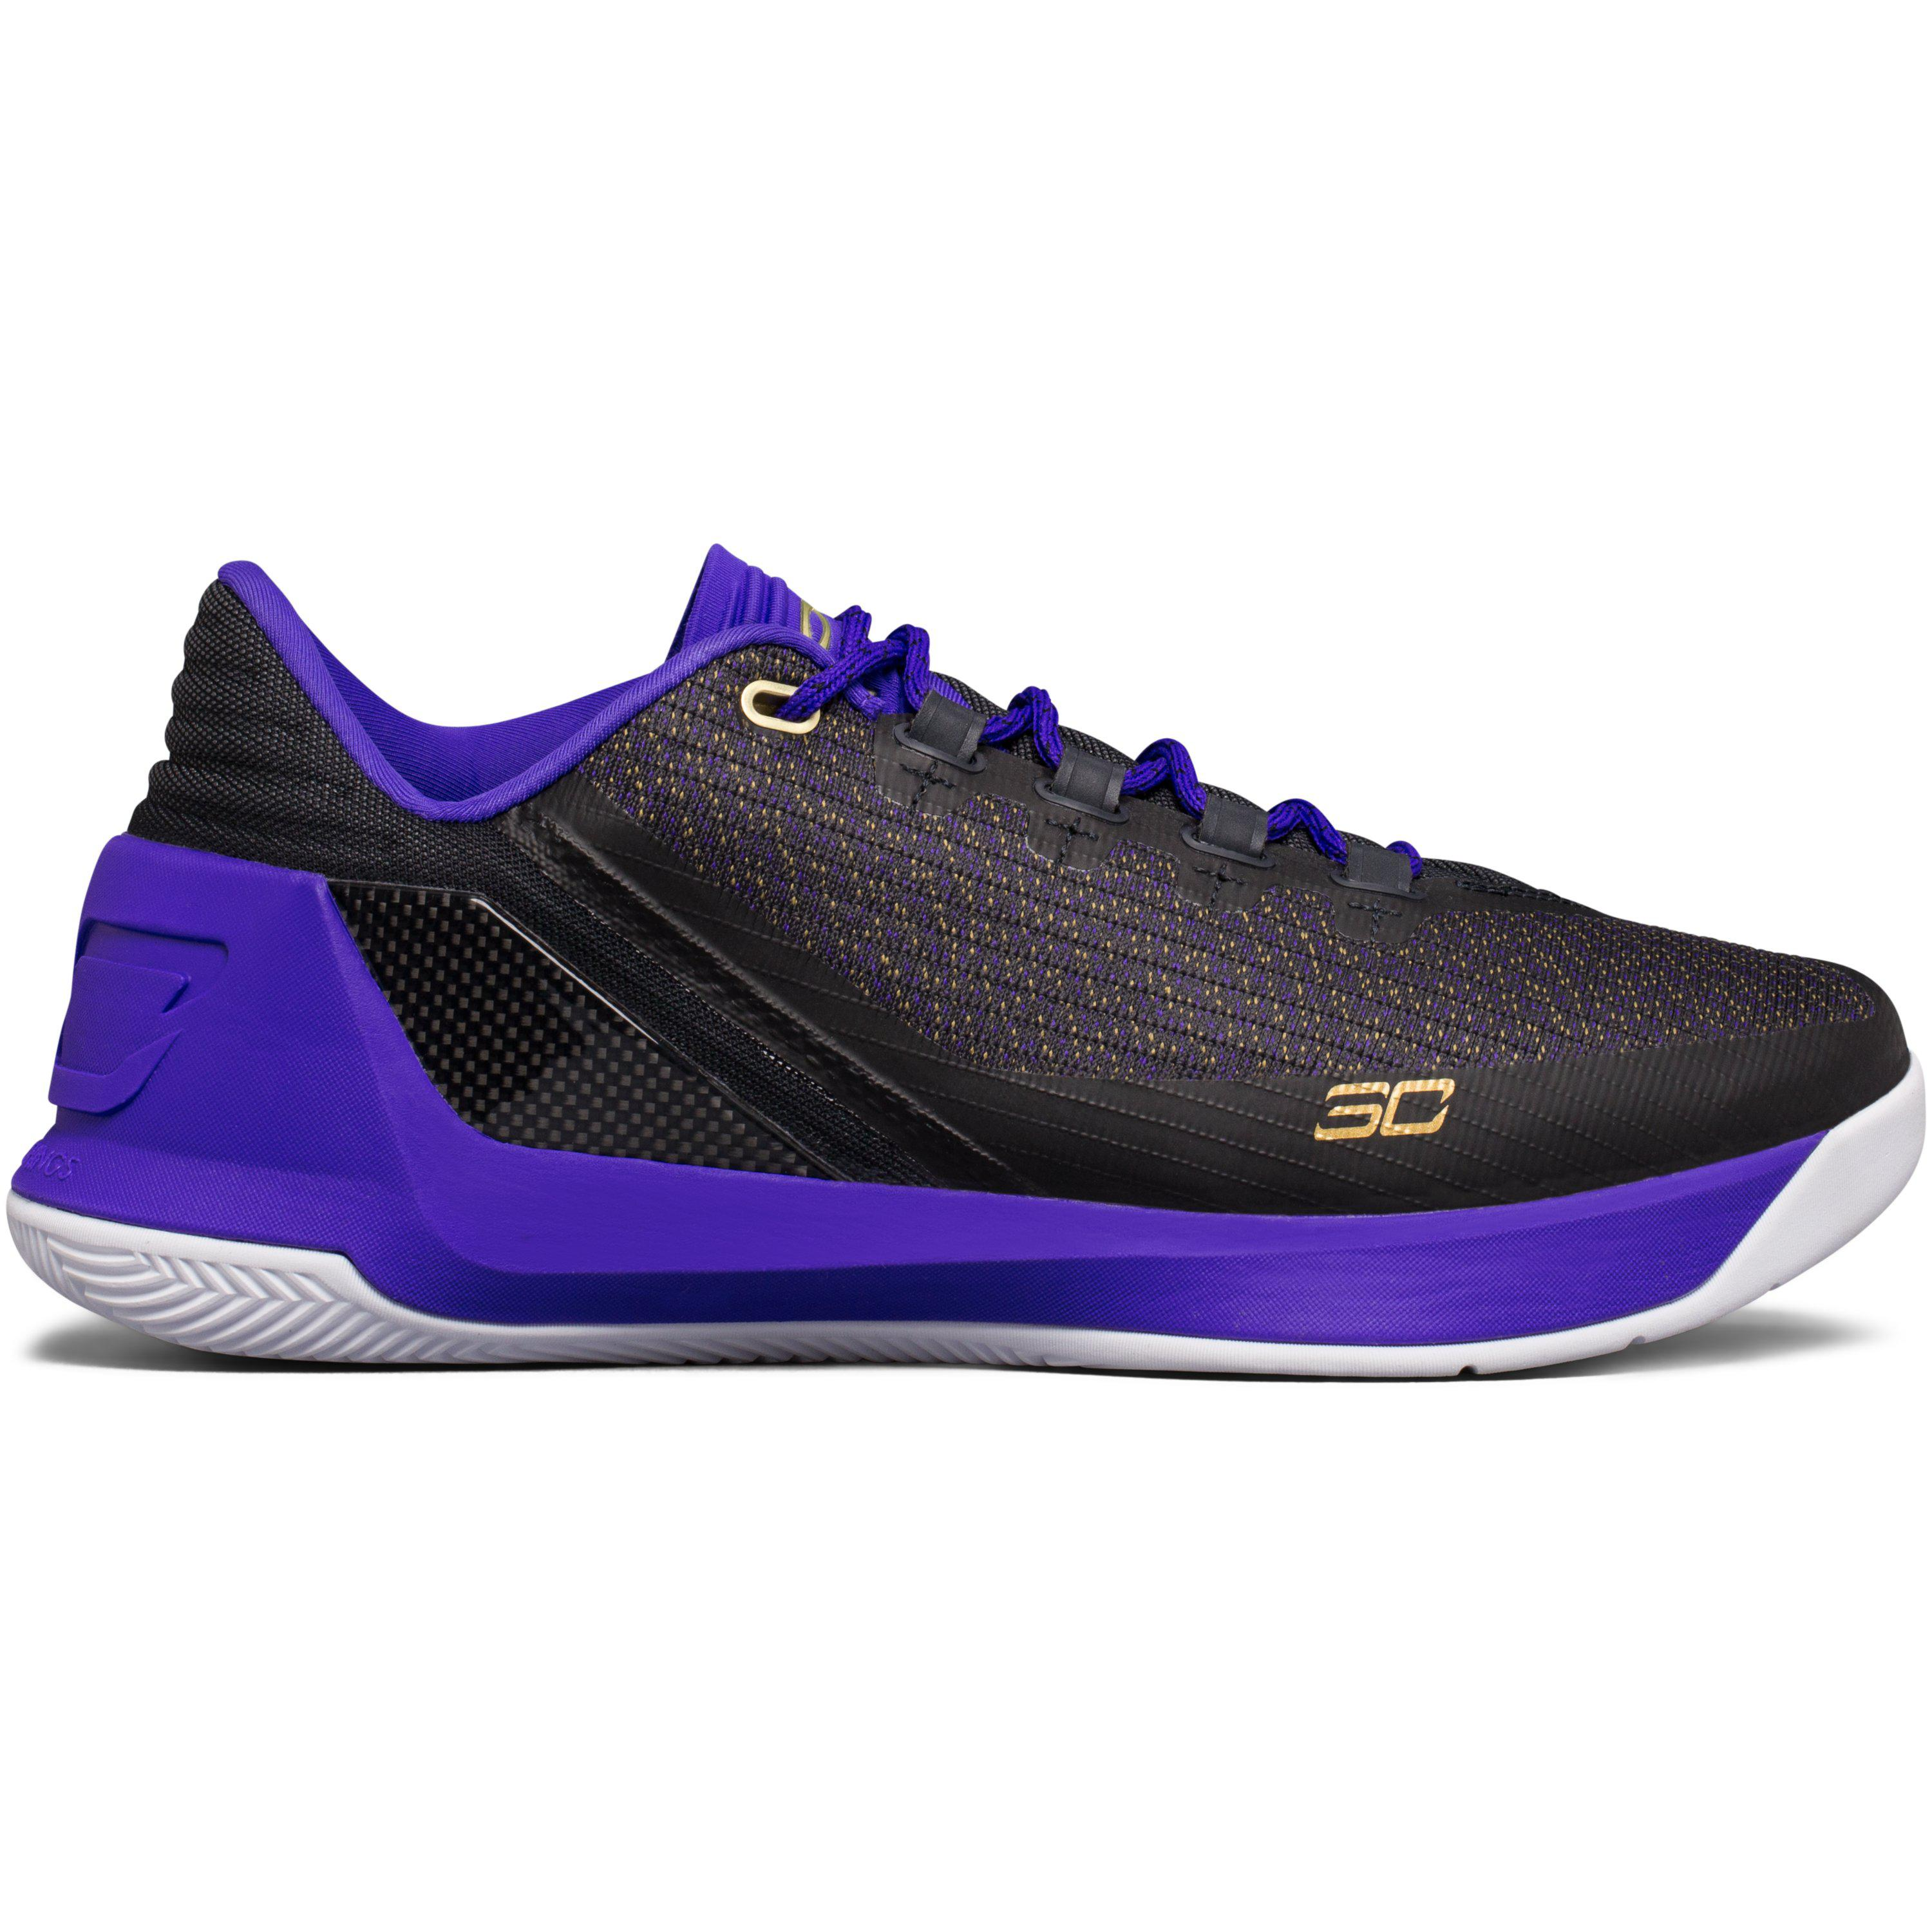 79c93c469bf0 ... discount code for lyst under armour mens ua curry 3 low basketball shoes  in purple 01450